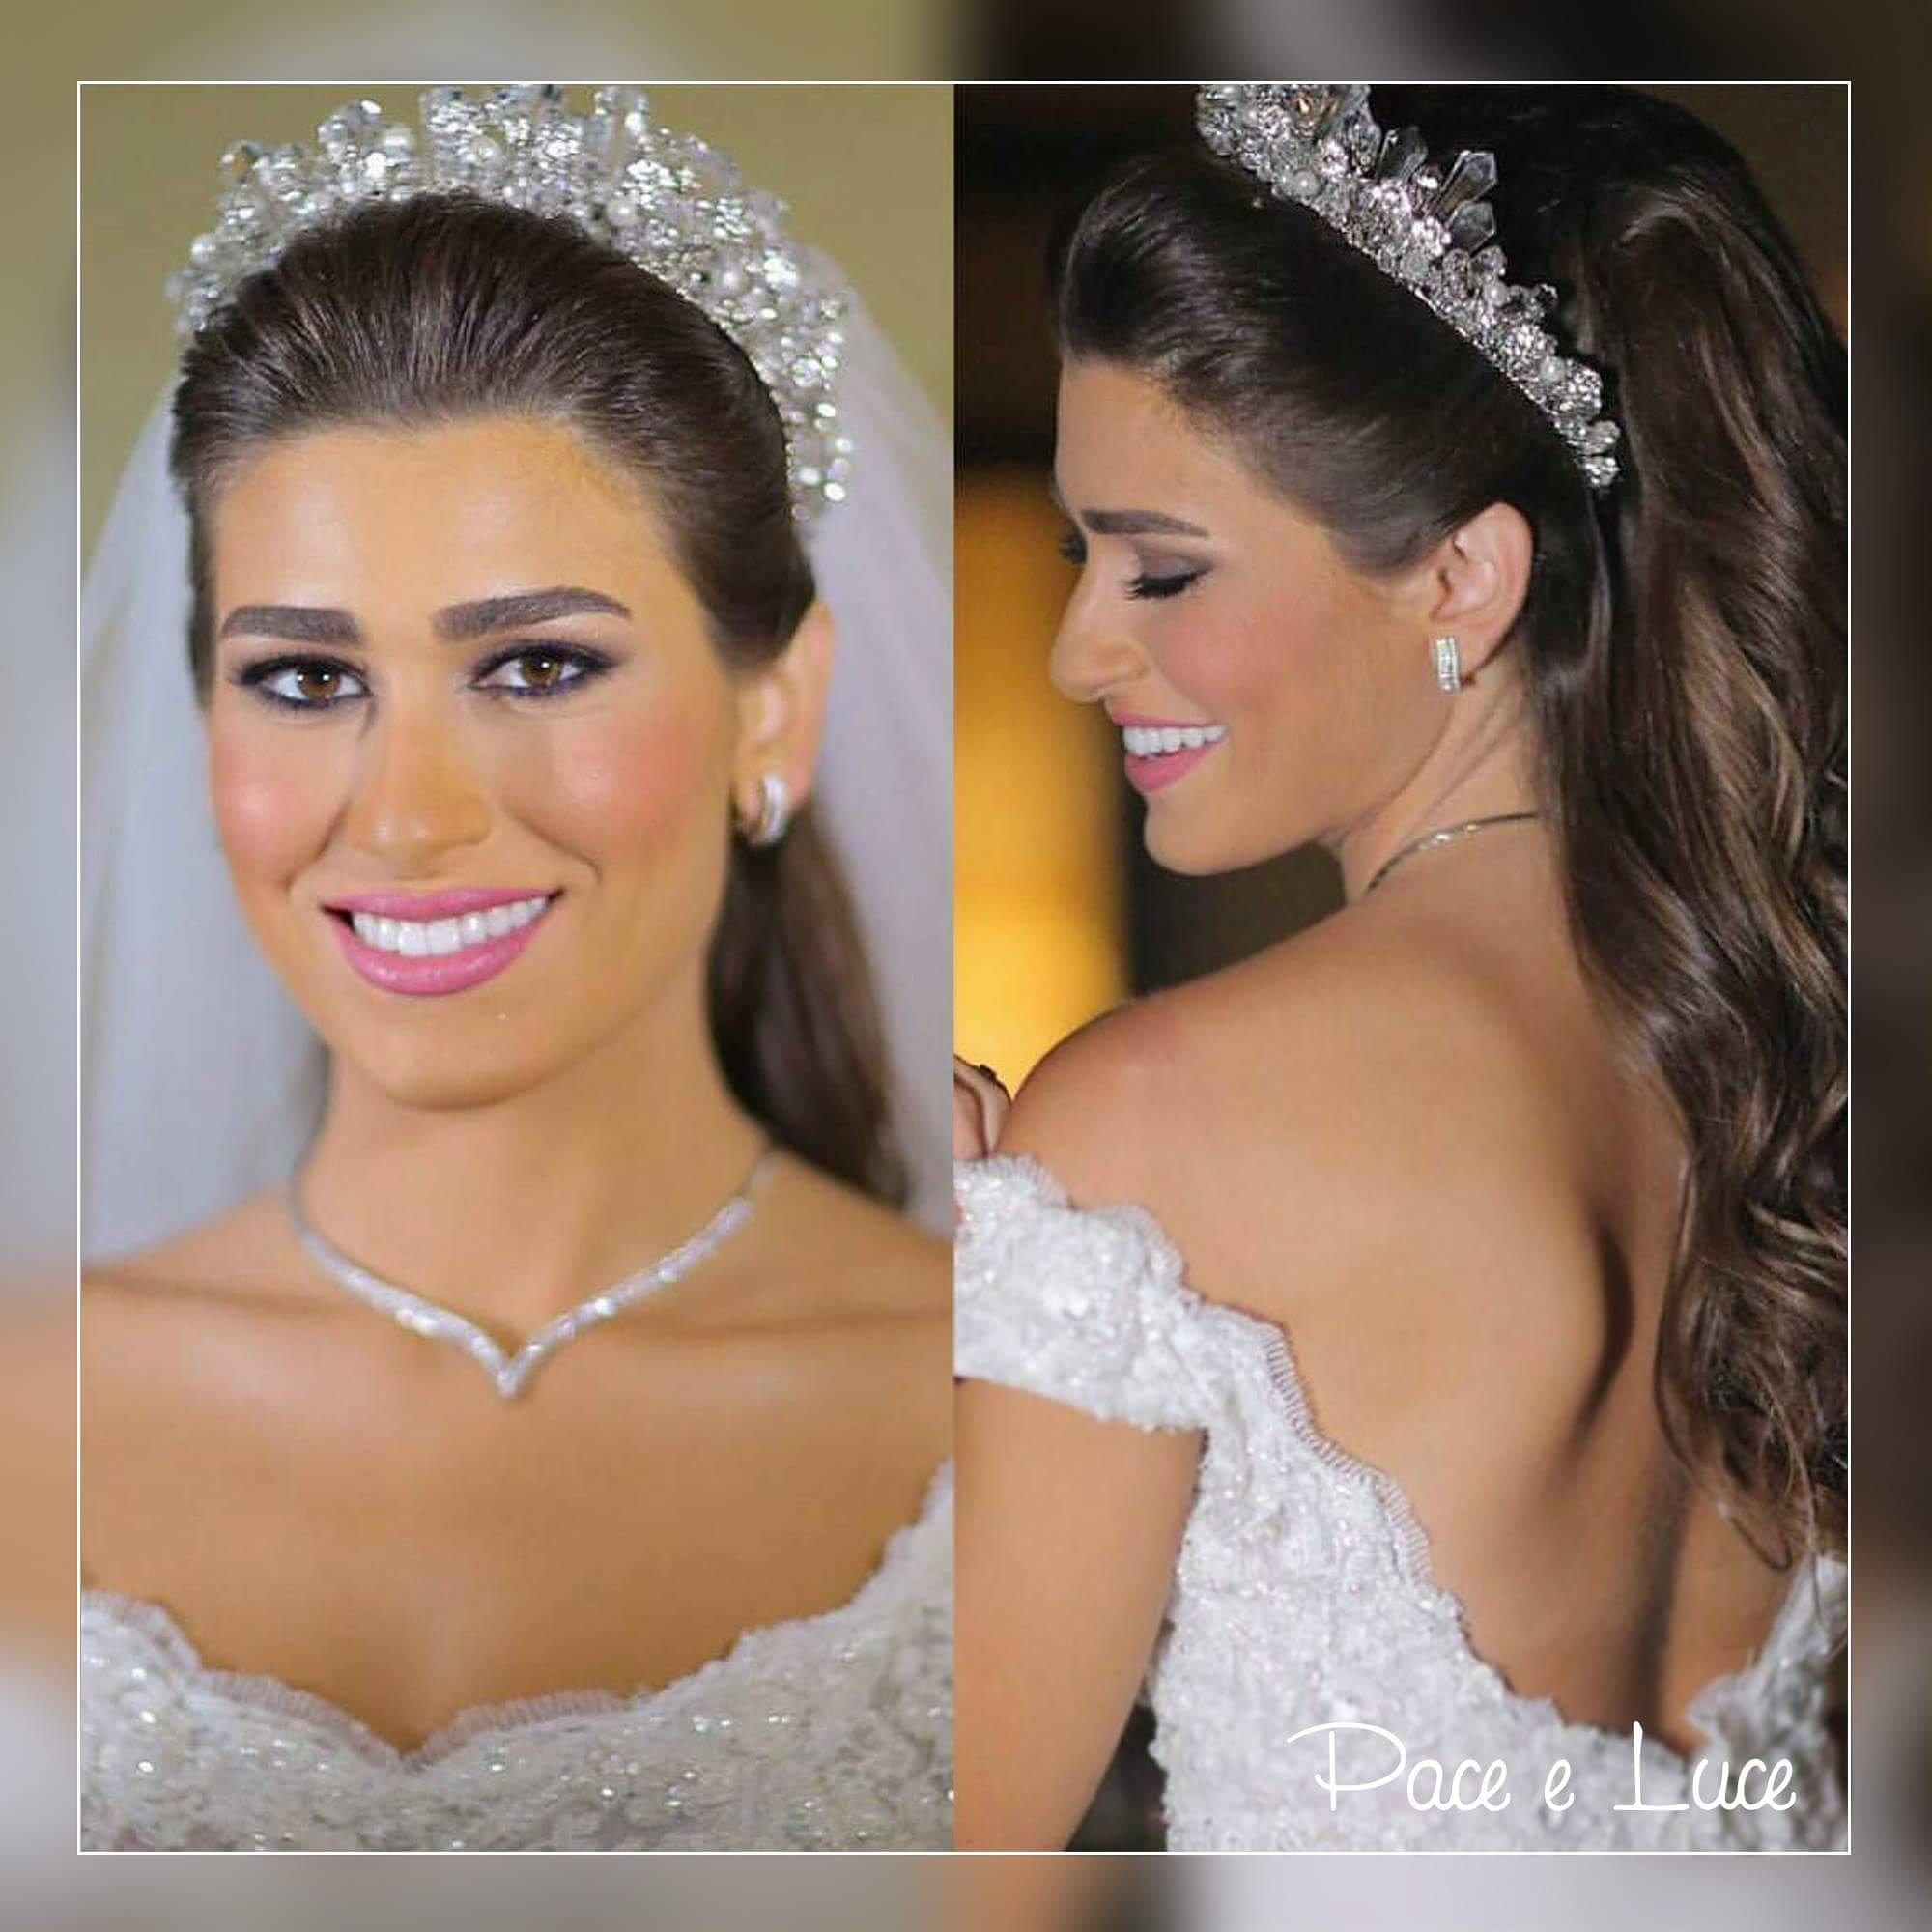 "Pace e Luce ficial on Twitter ""Beautiful bride Hair Hussein"